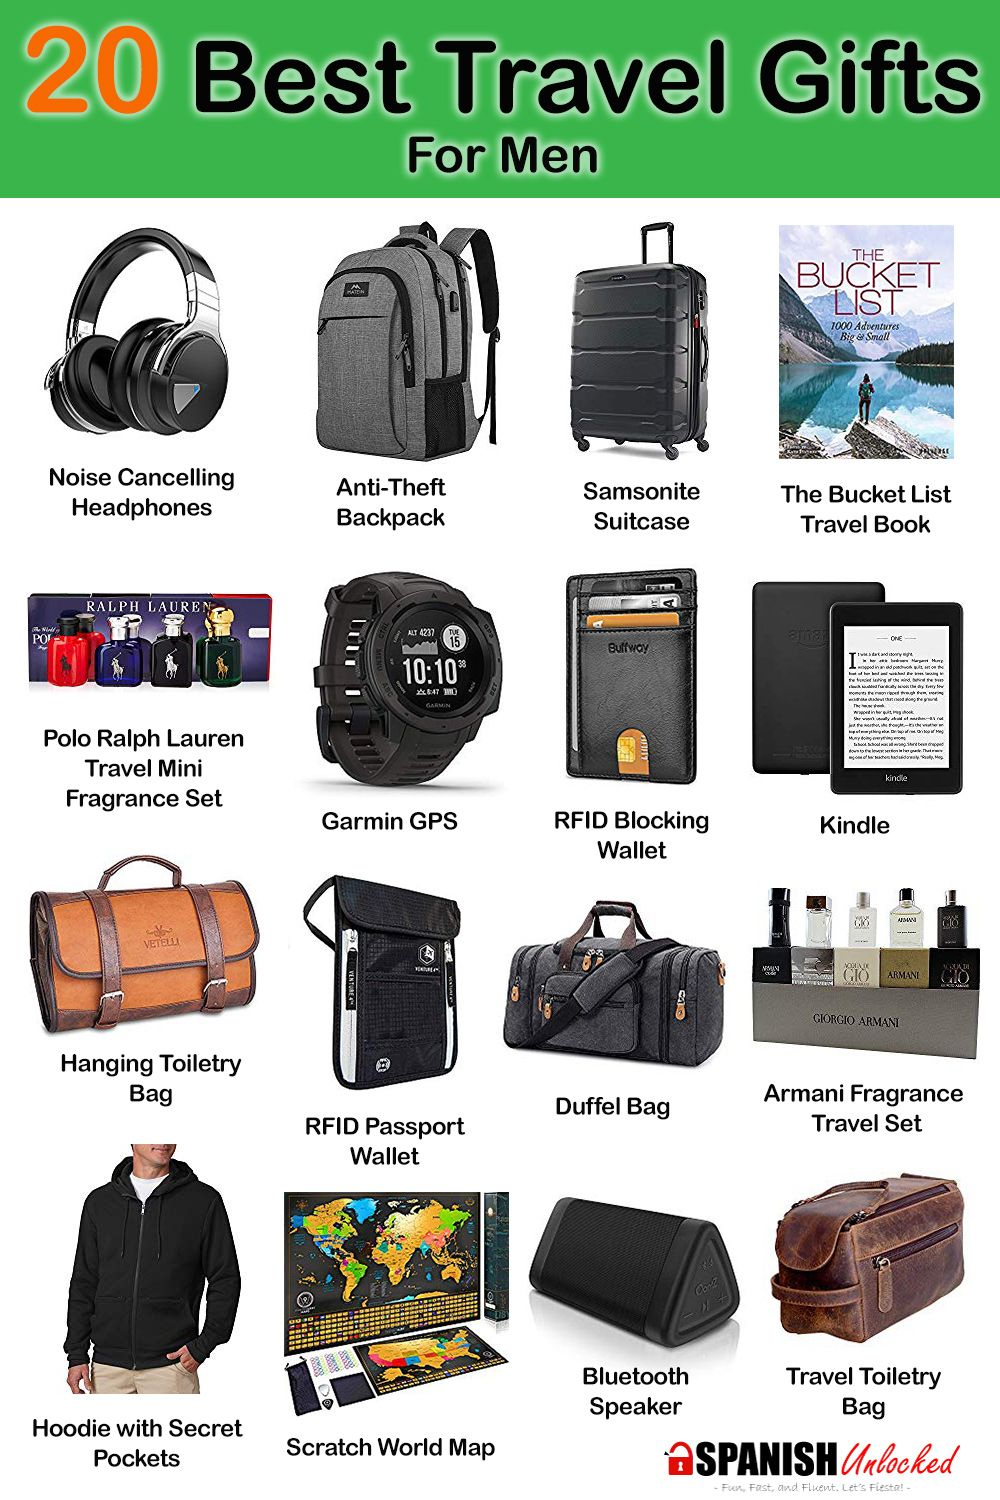 20 awesome travel gift ideas for men who have everything